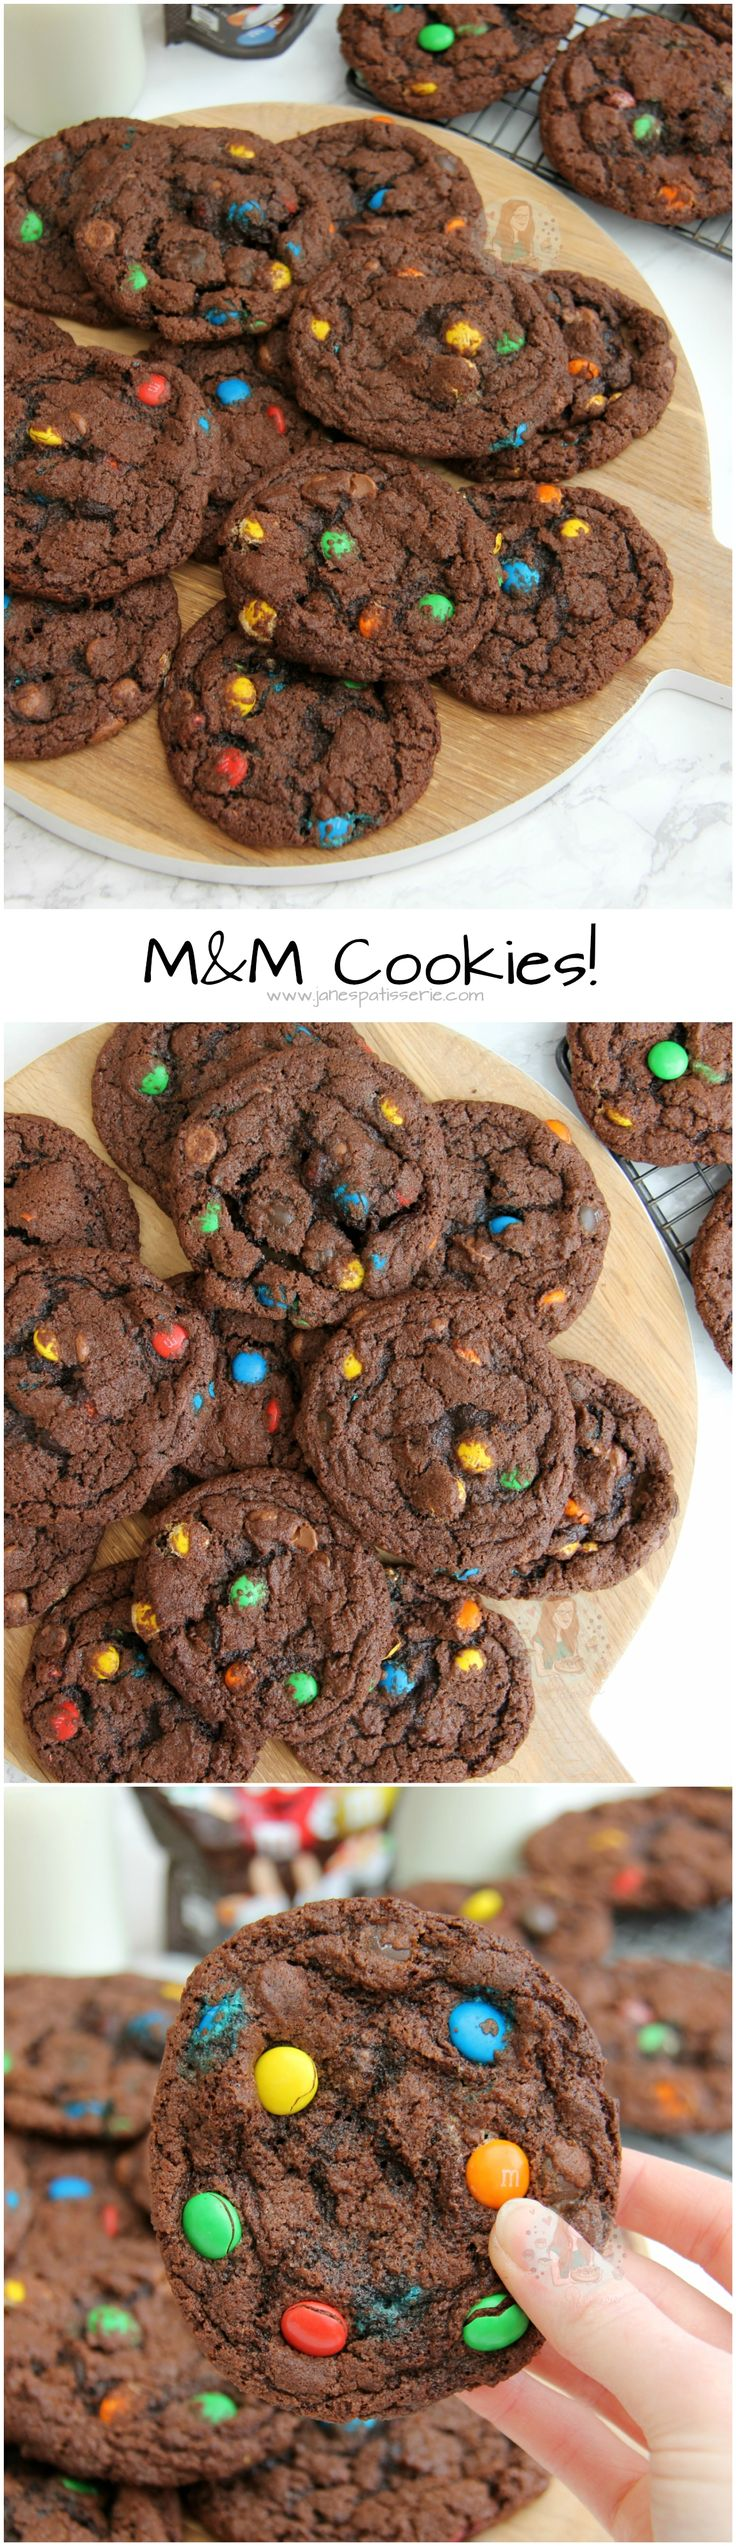 M&M Cookies! Super Easy and Delicious Chewy, Crunchy, Gooey and Chocolatey M&M Cookies that every Chocoholic will adore.